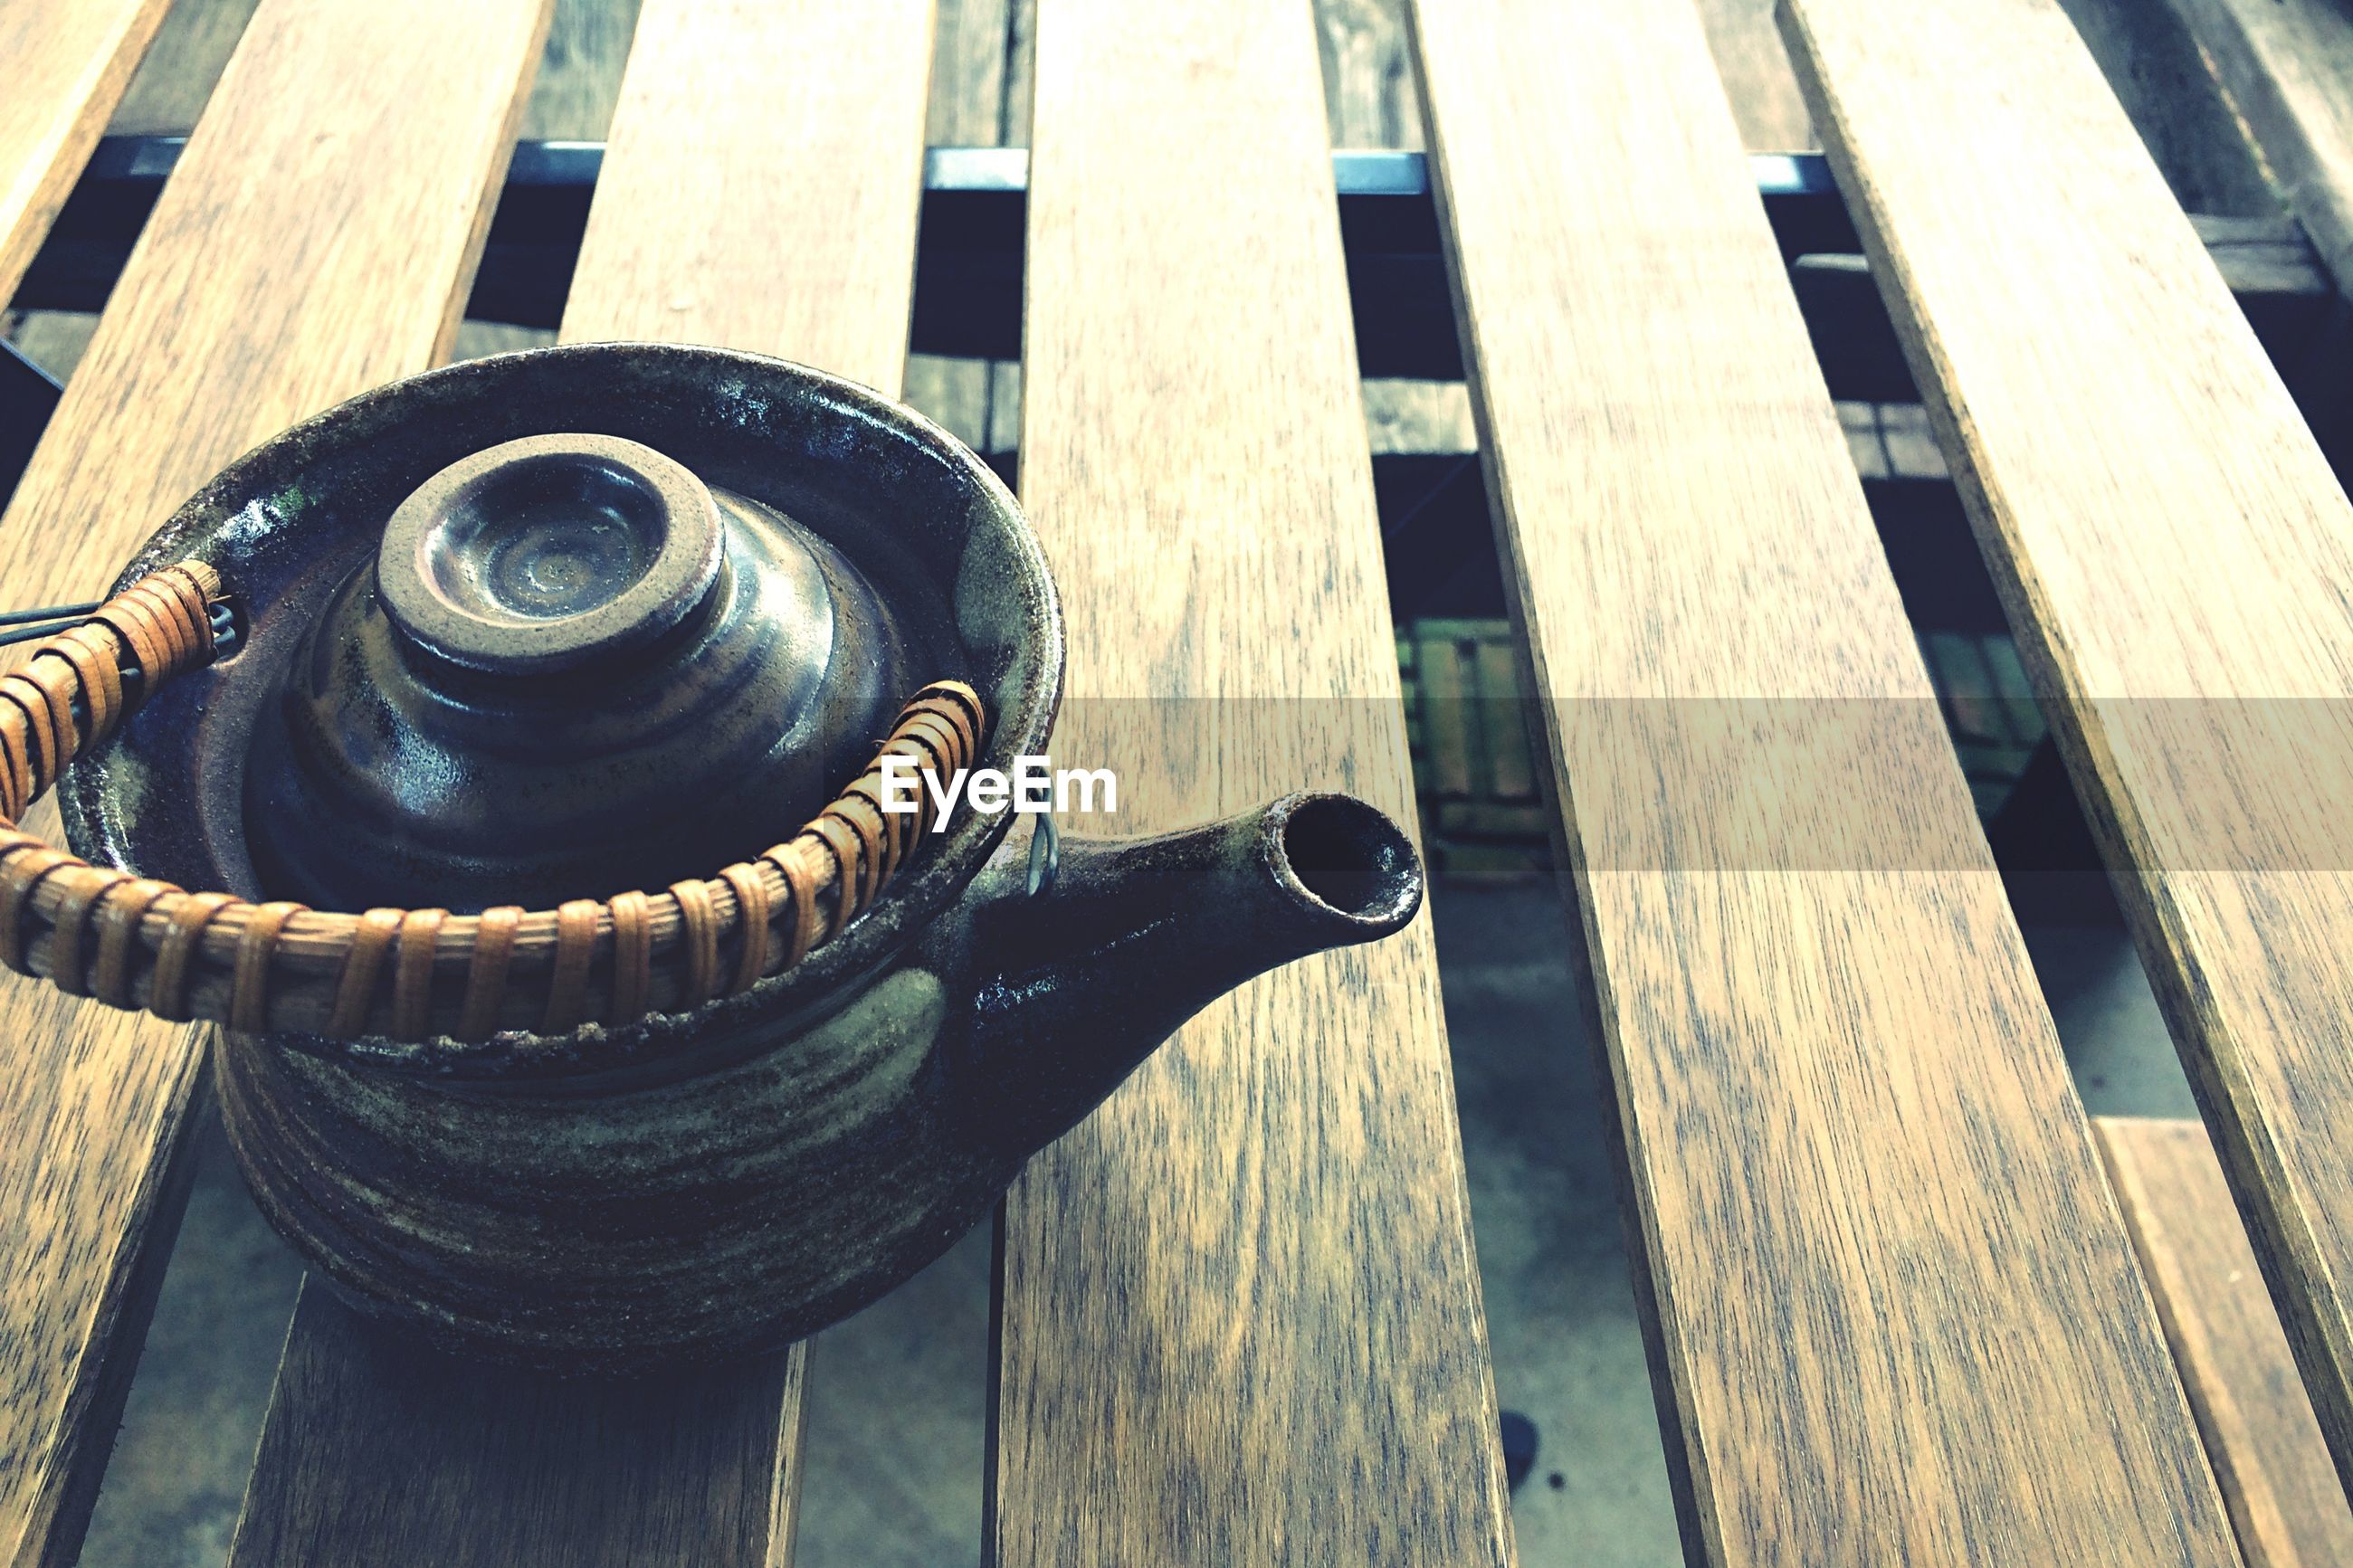 High angle view of kettle on wooden table